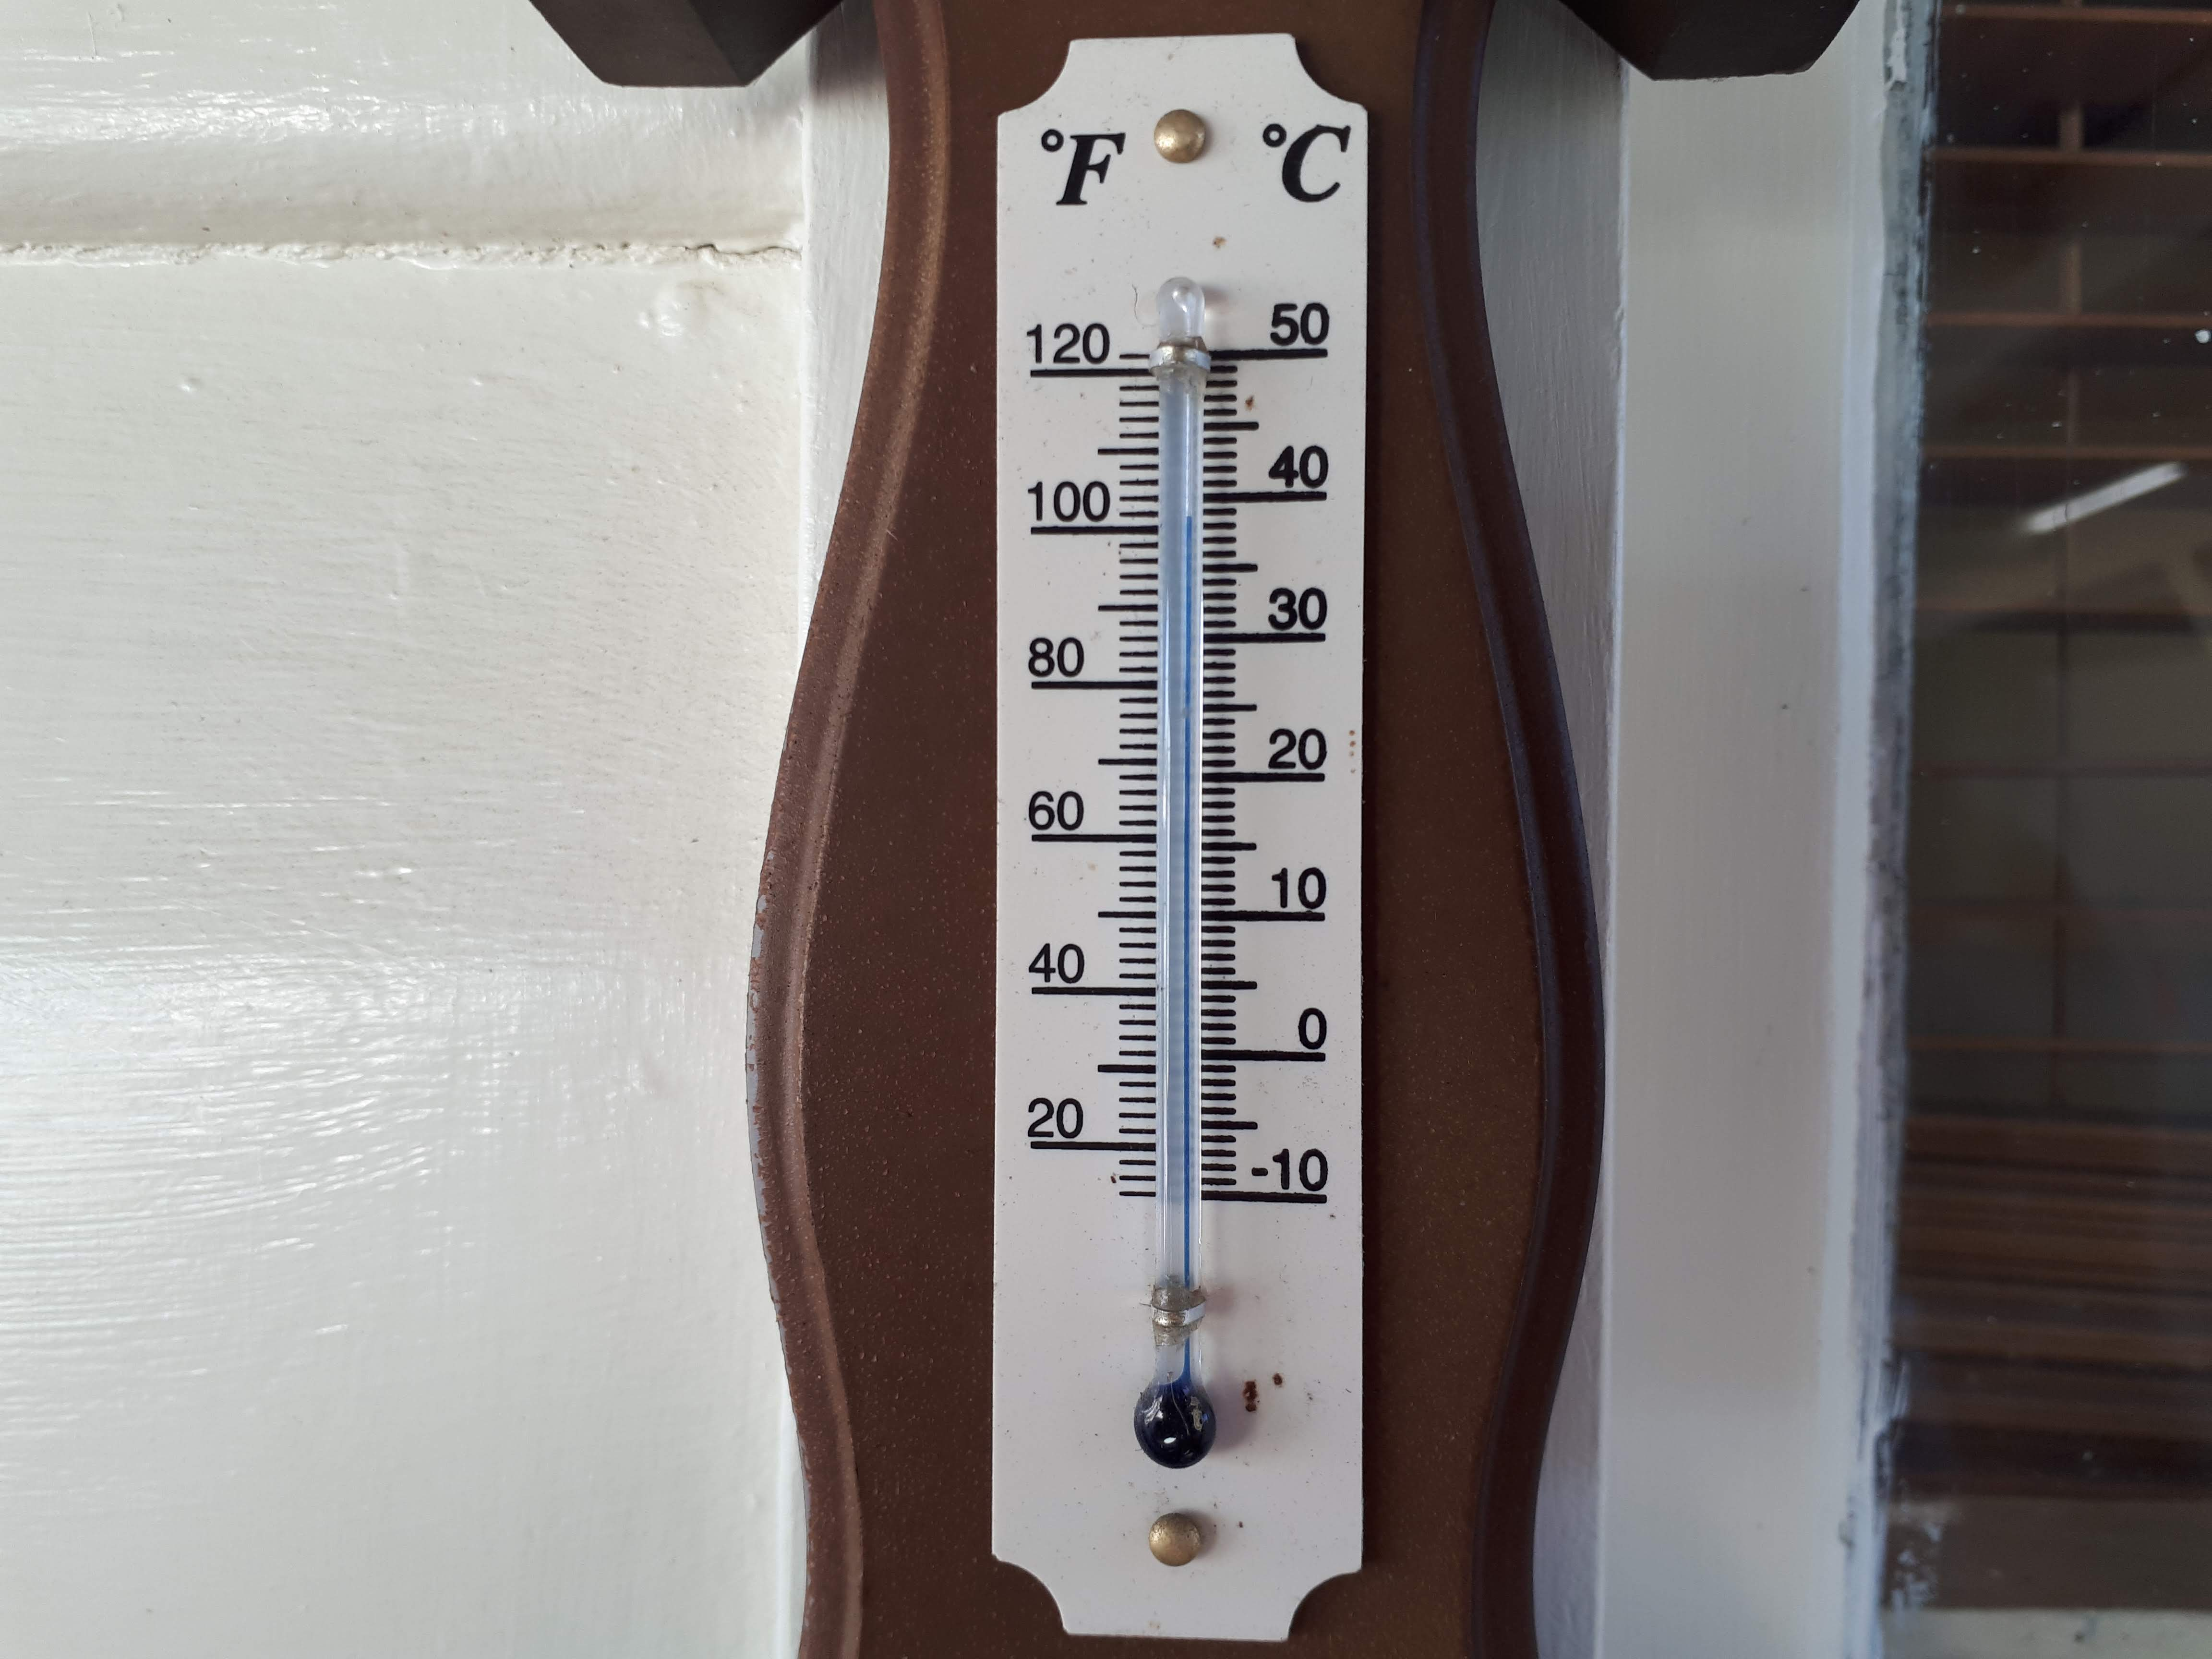 Thermometer reading 39 degrees C.